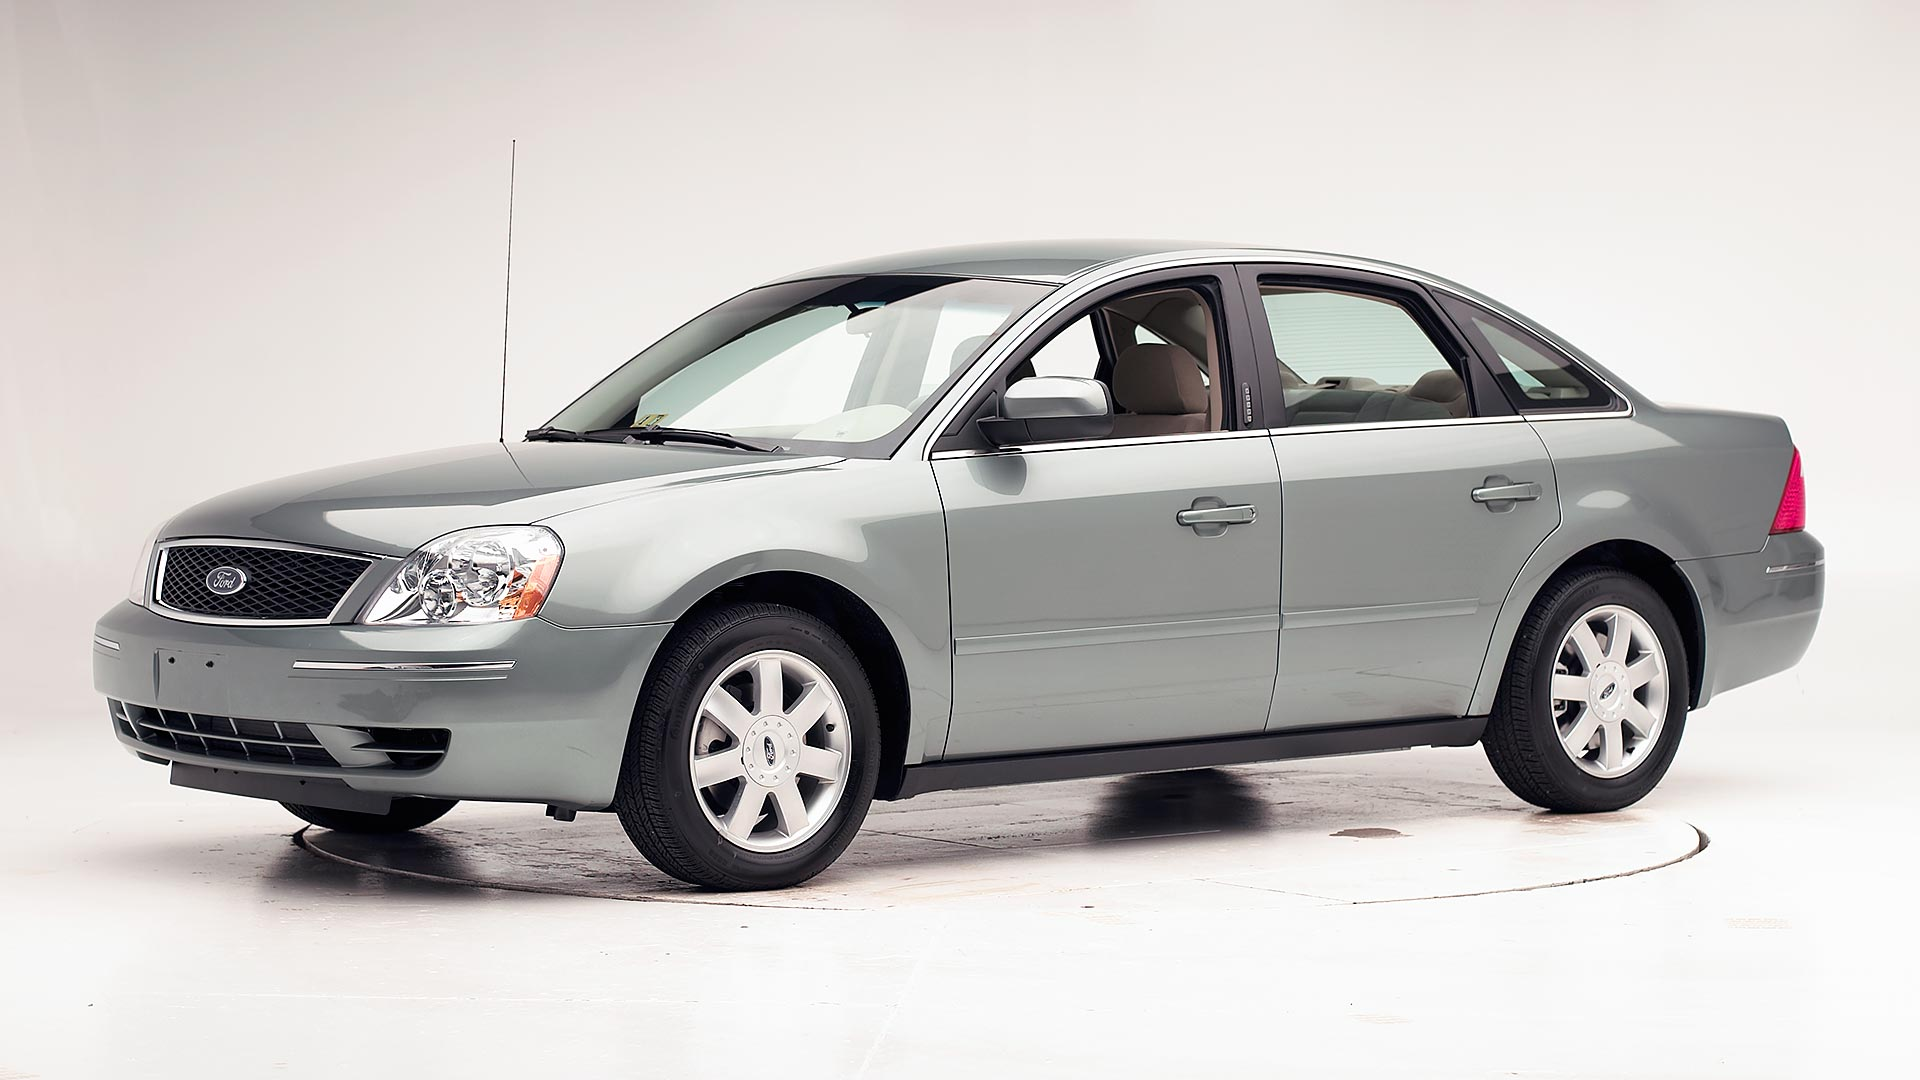 2005 Ford Five Hundred 4-door sedan